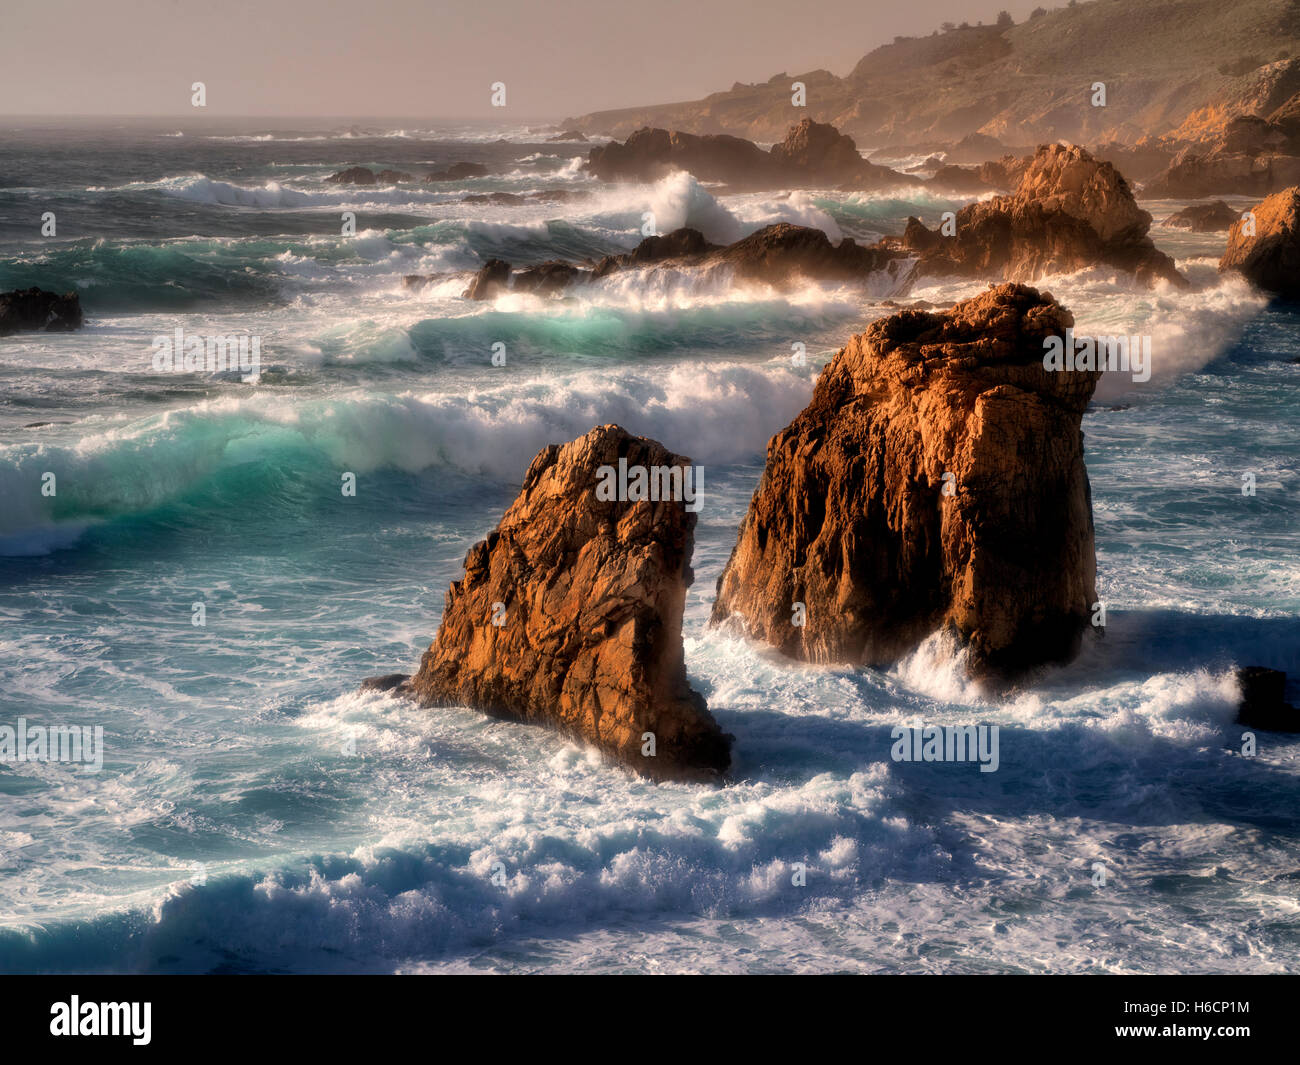 Waves, and shoreline at sunset. Garrapata State Park, California - Stock Image